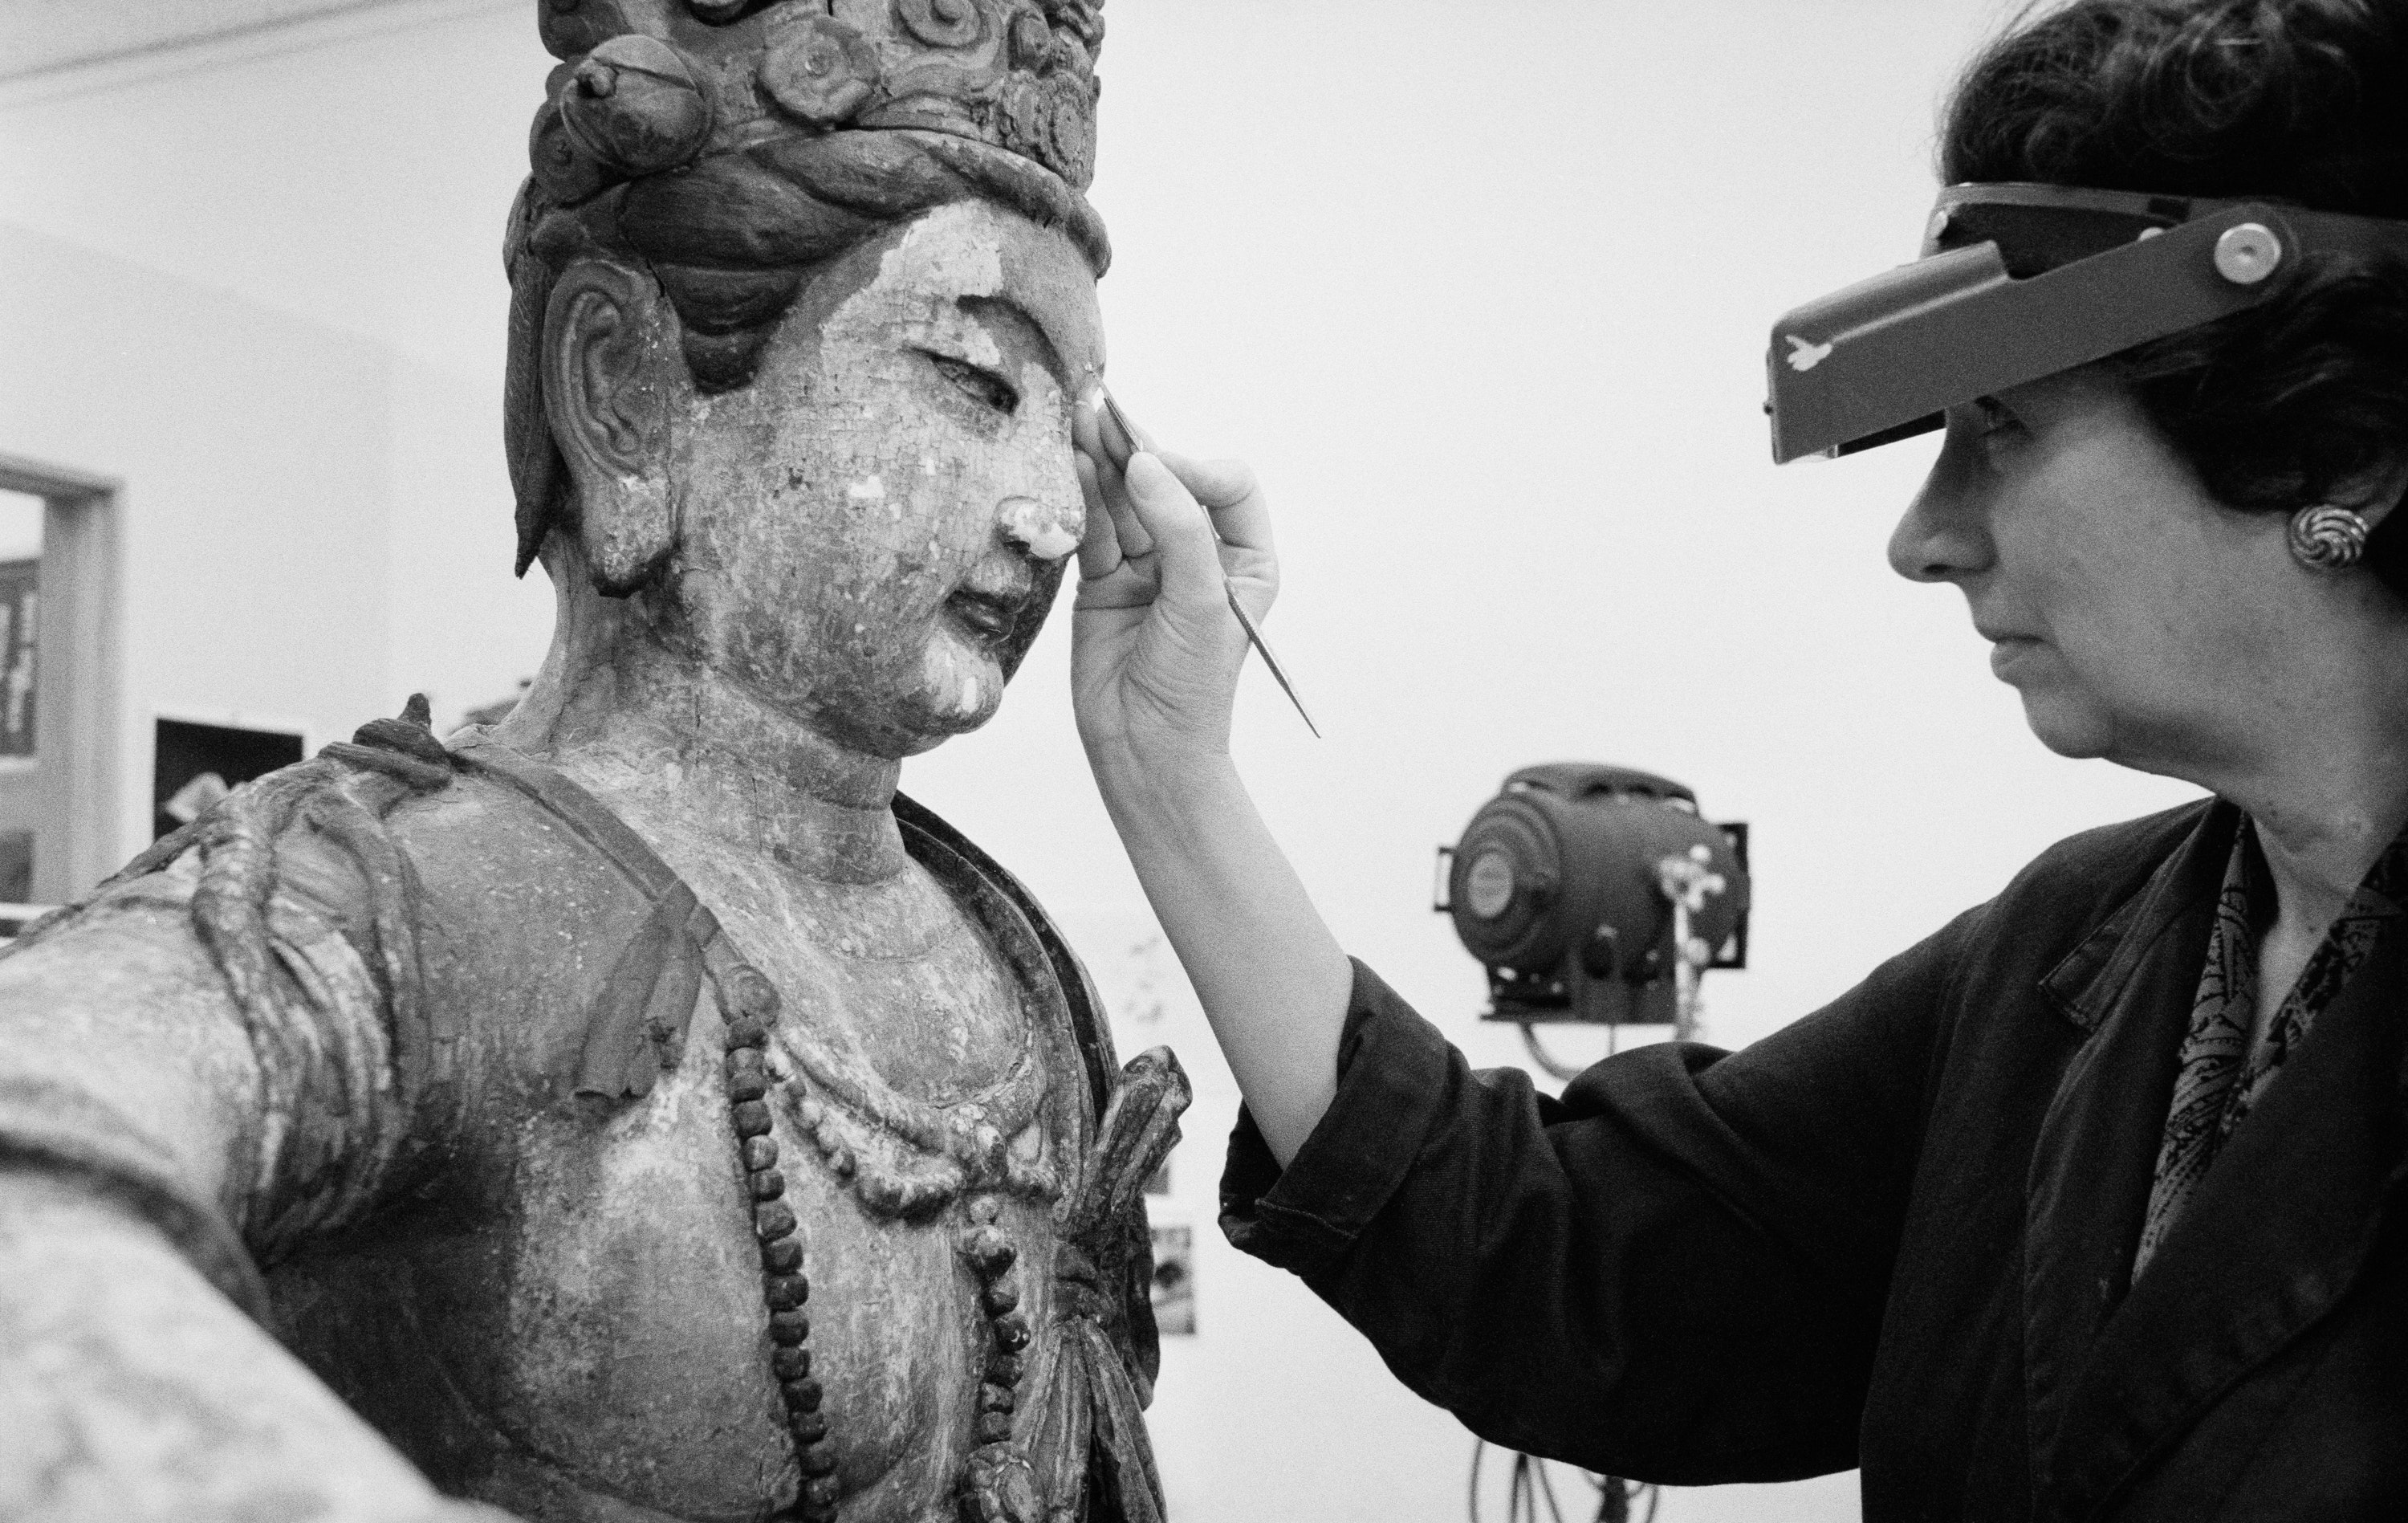 A conservator works on a Chinese sculpture using a hand tool.